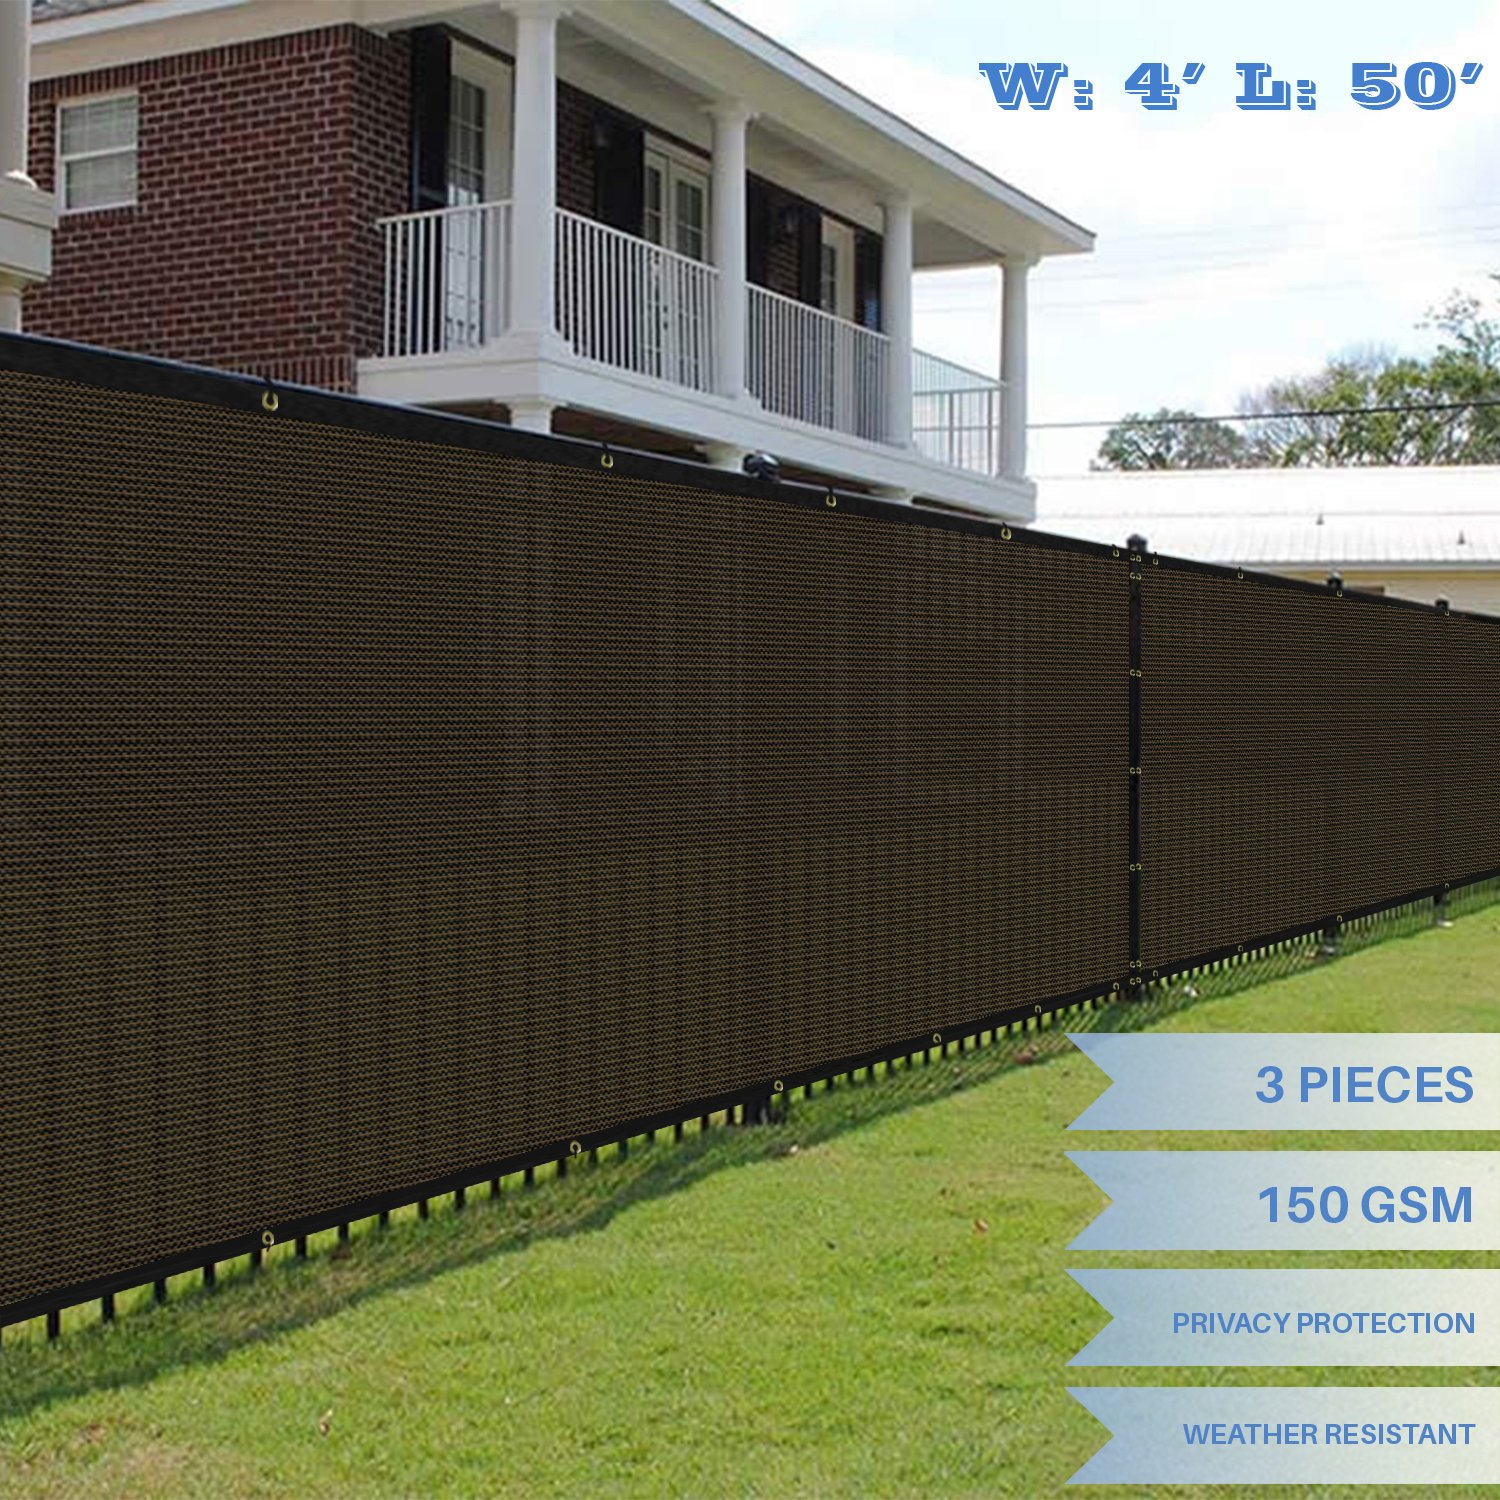 E&K Sunrise 4' x 50' Brown Fence Privacy Screen, Commercial Outdoor Backyard Shade Windscreen Mesh Fabric 3 Years Warranty (Customized Sizes Available) - Set of 3